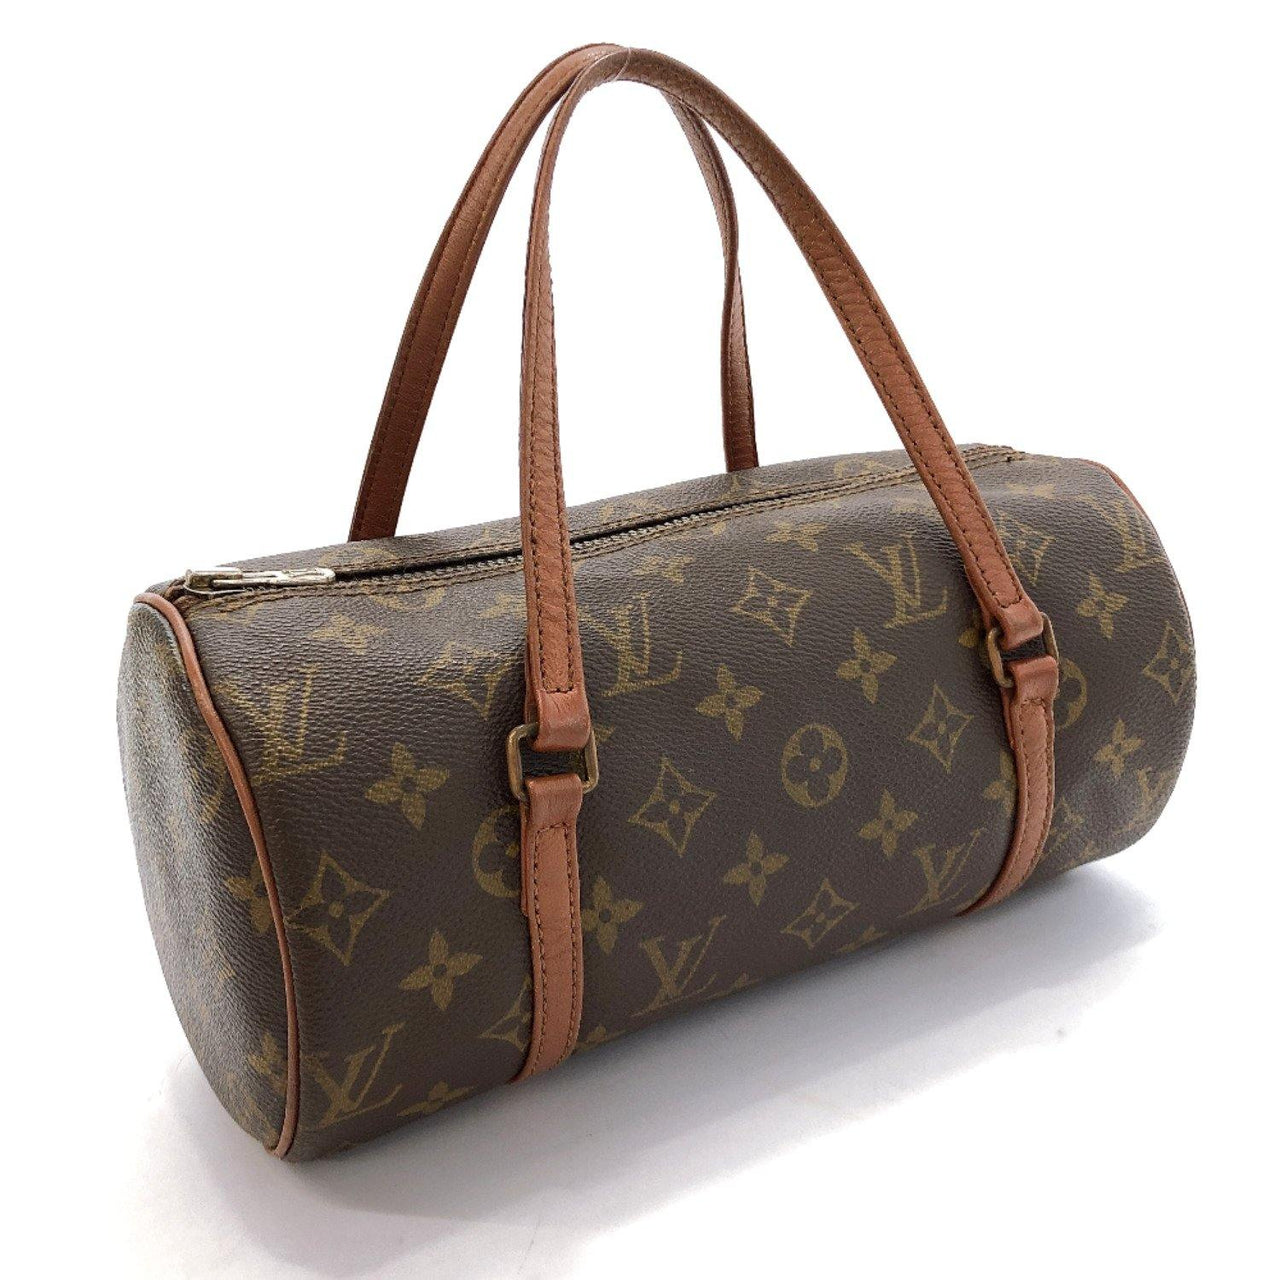 LOUIS VUITTON Handbag M51366 Papillon 26 vintage Monogram canvas Brown Women Used - JP-BRANDS.com